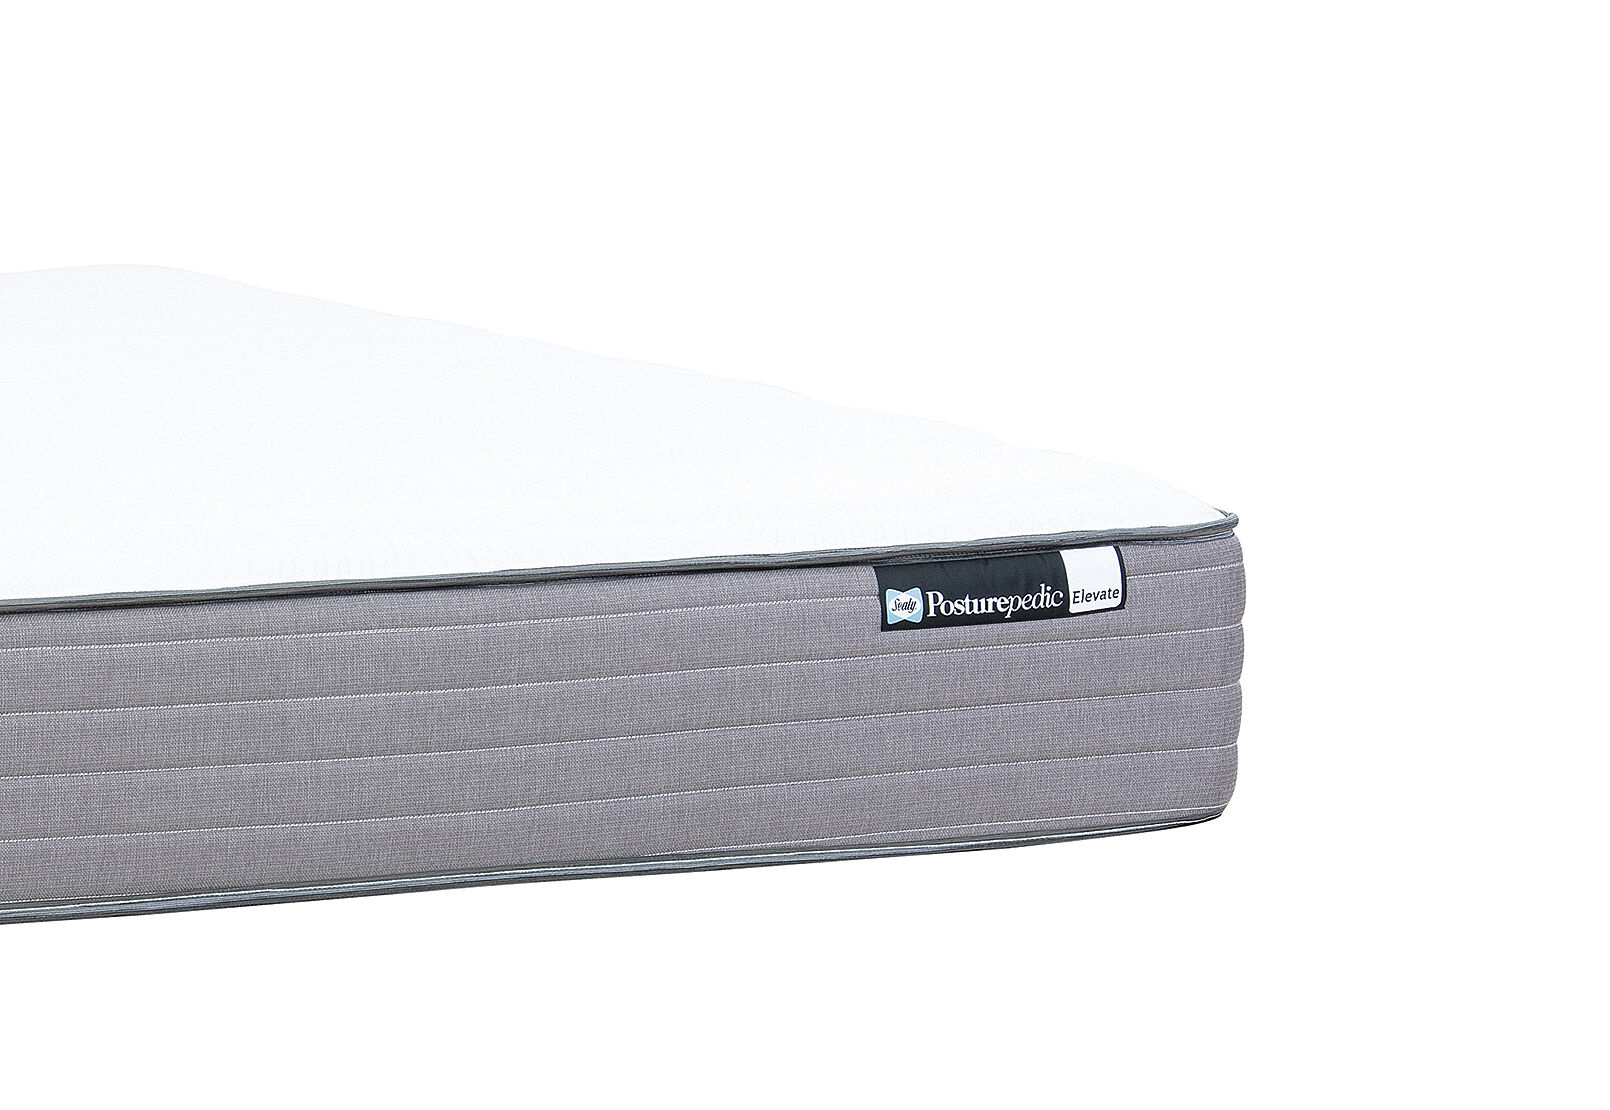 POSTUREPEDIC ELEVATE MARQUIS FIRM